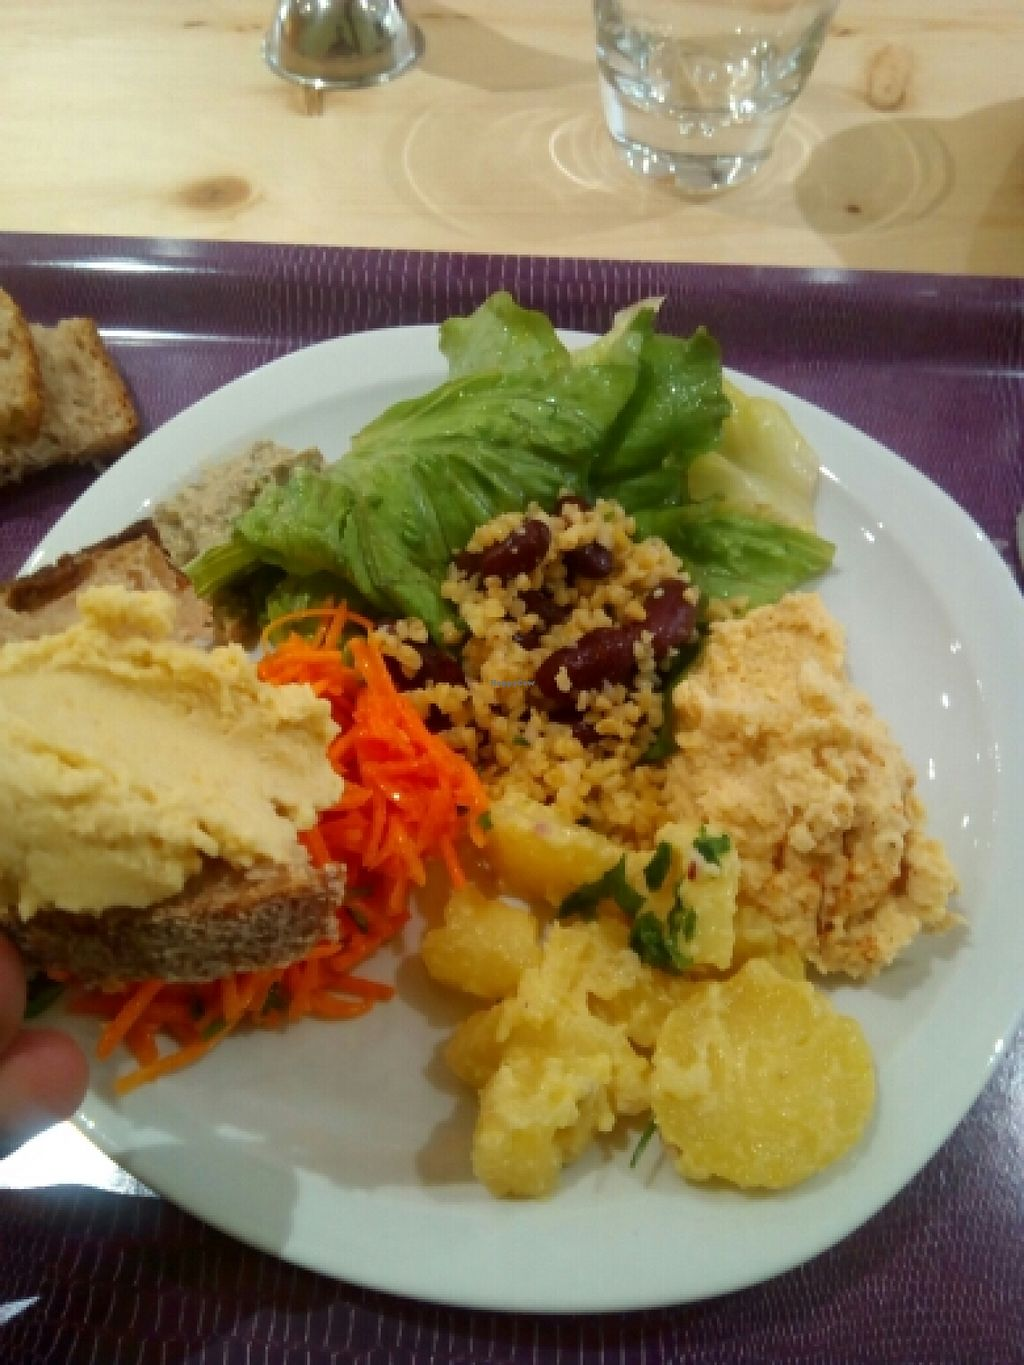 """Photo of La Jasette  by <a href=""""/members/profile/LeoLeSter"""">LeoLeSter</a> <br/>buffet. all vegan  <br/> June 11, 2016  - <a href='/contact/abuse/image/64686/153414'>Report</a>"""